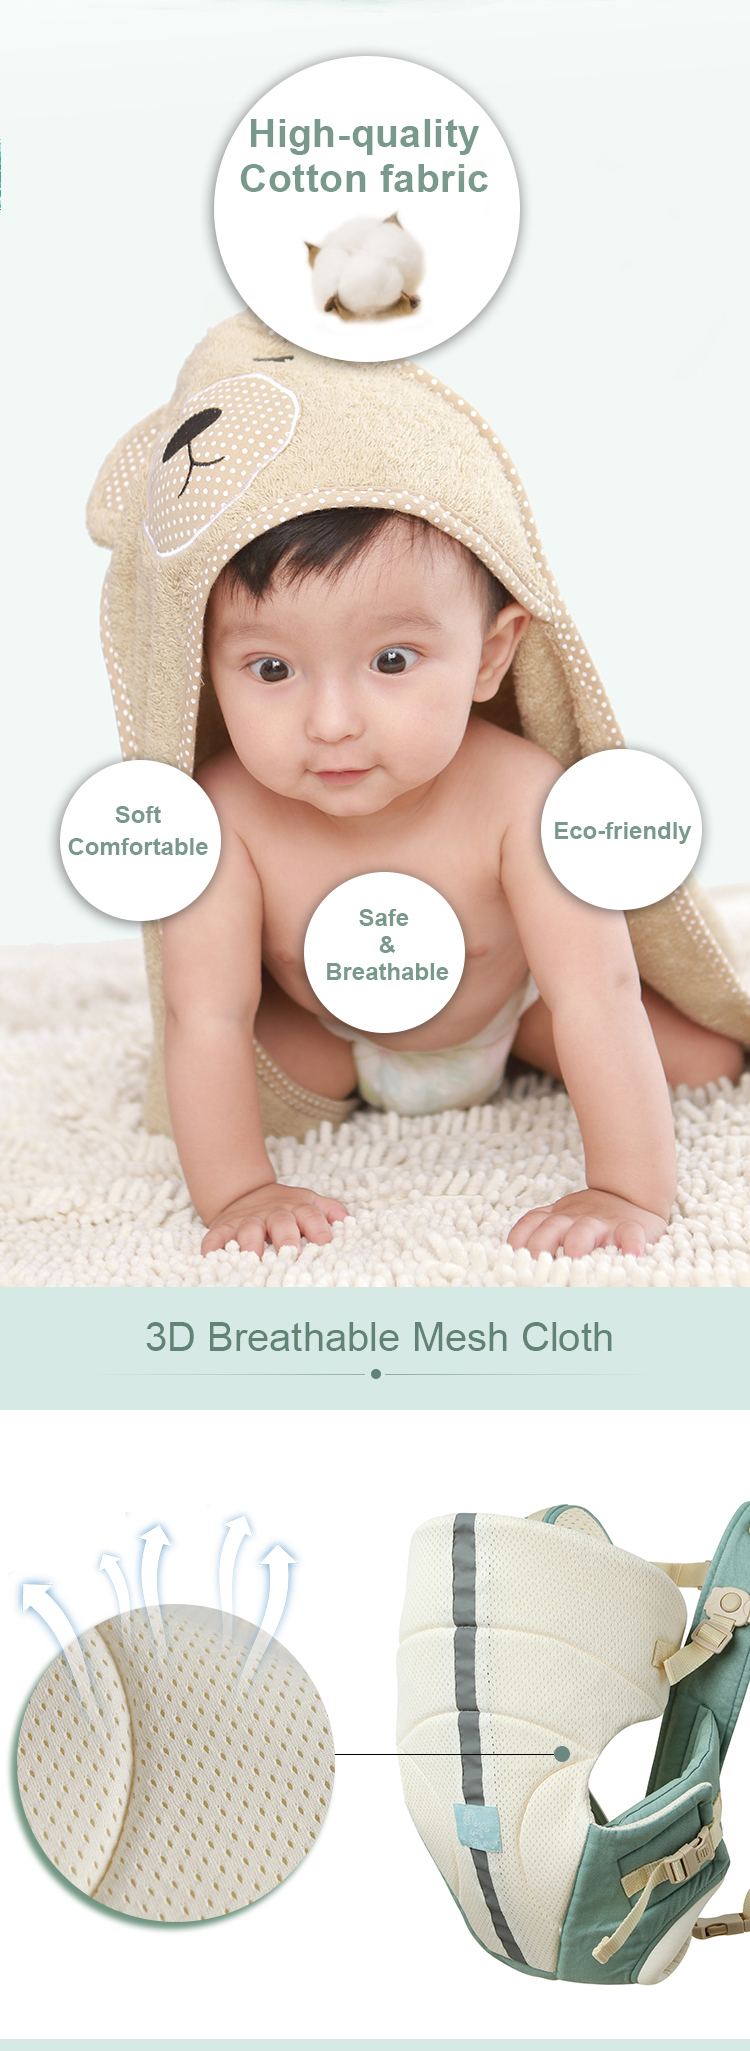 new breathable eco-friendly cotton baby sling baby carrier for newborns & toddler